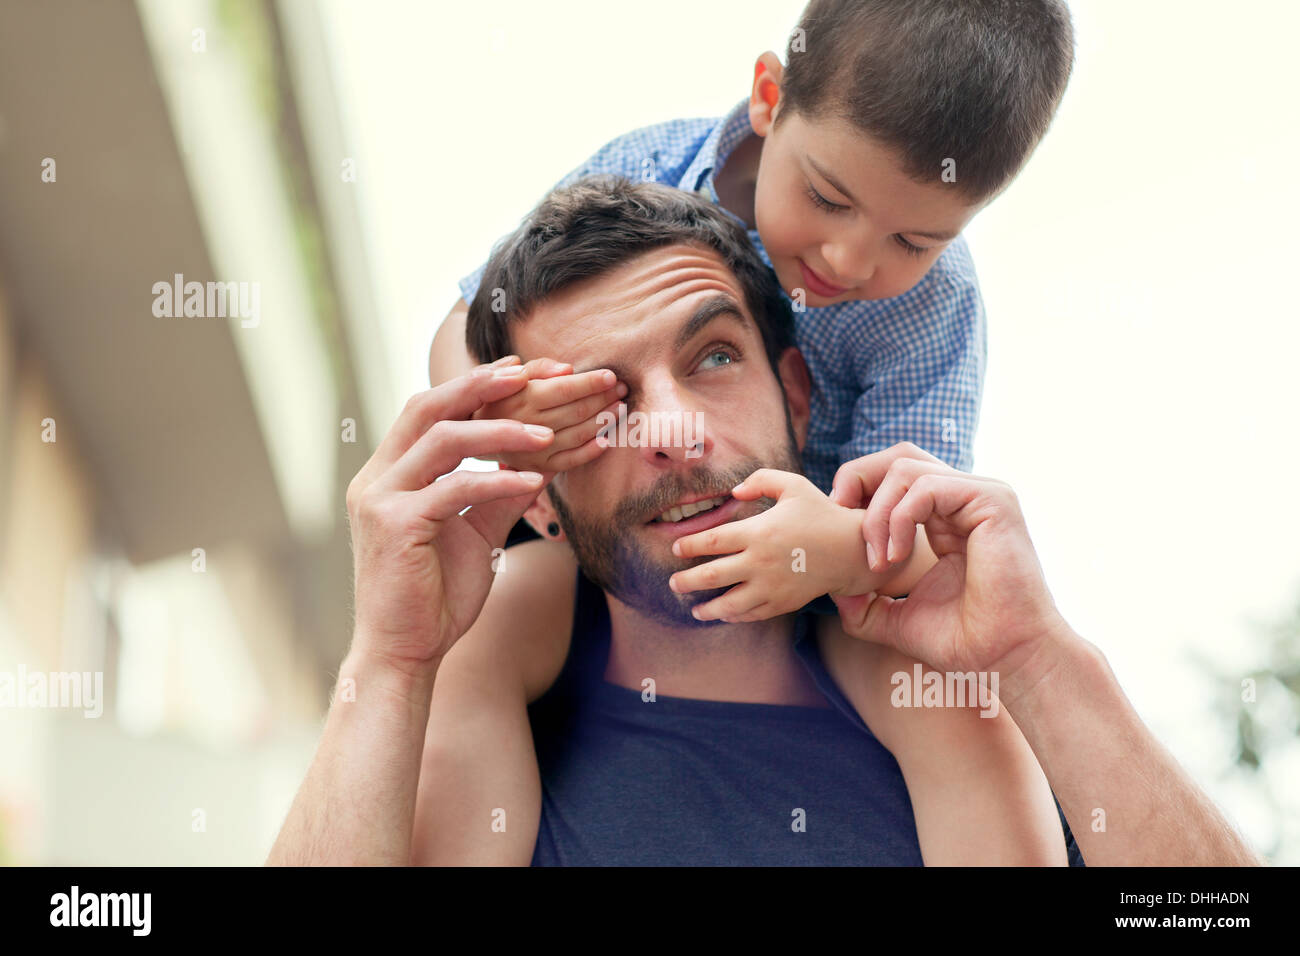 Father carrying son on shoulders, boy covering man's eye - Stock Image